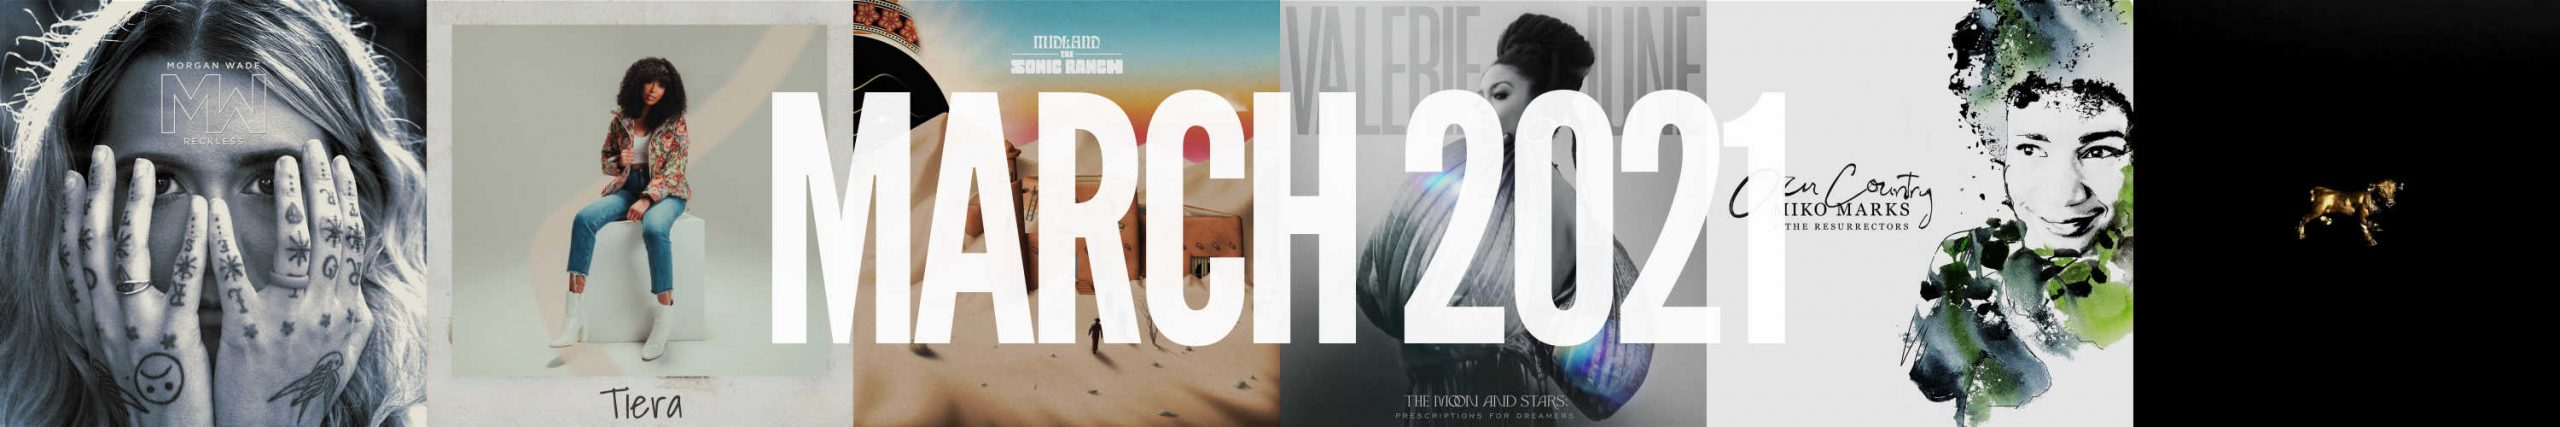 March 2021 New Country Album Releases